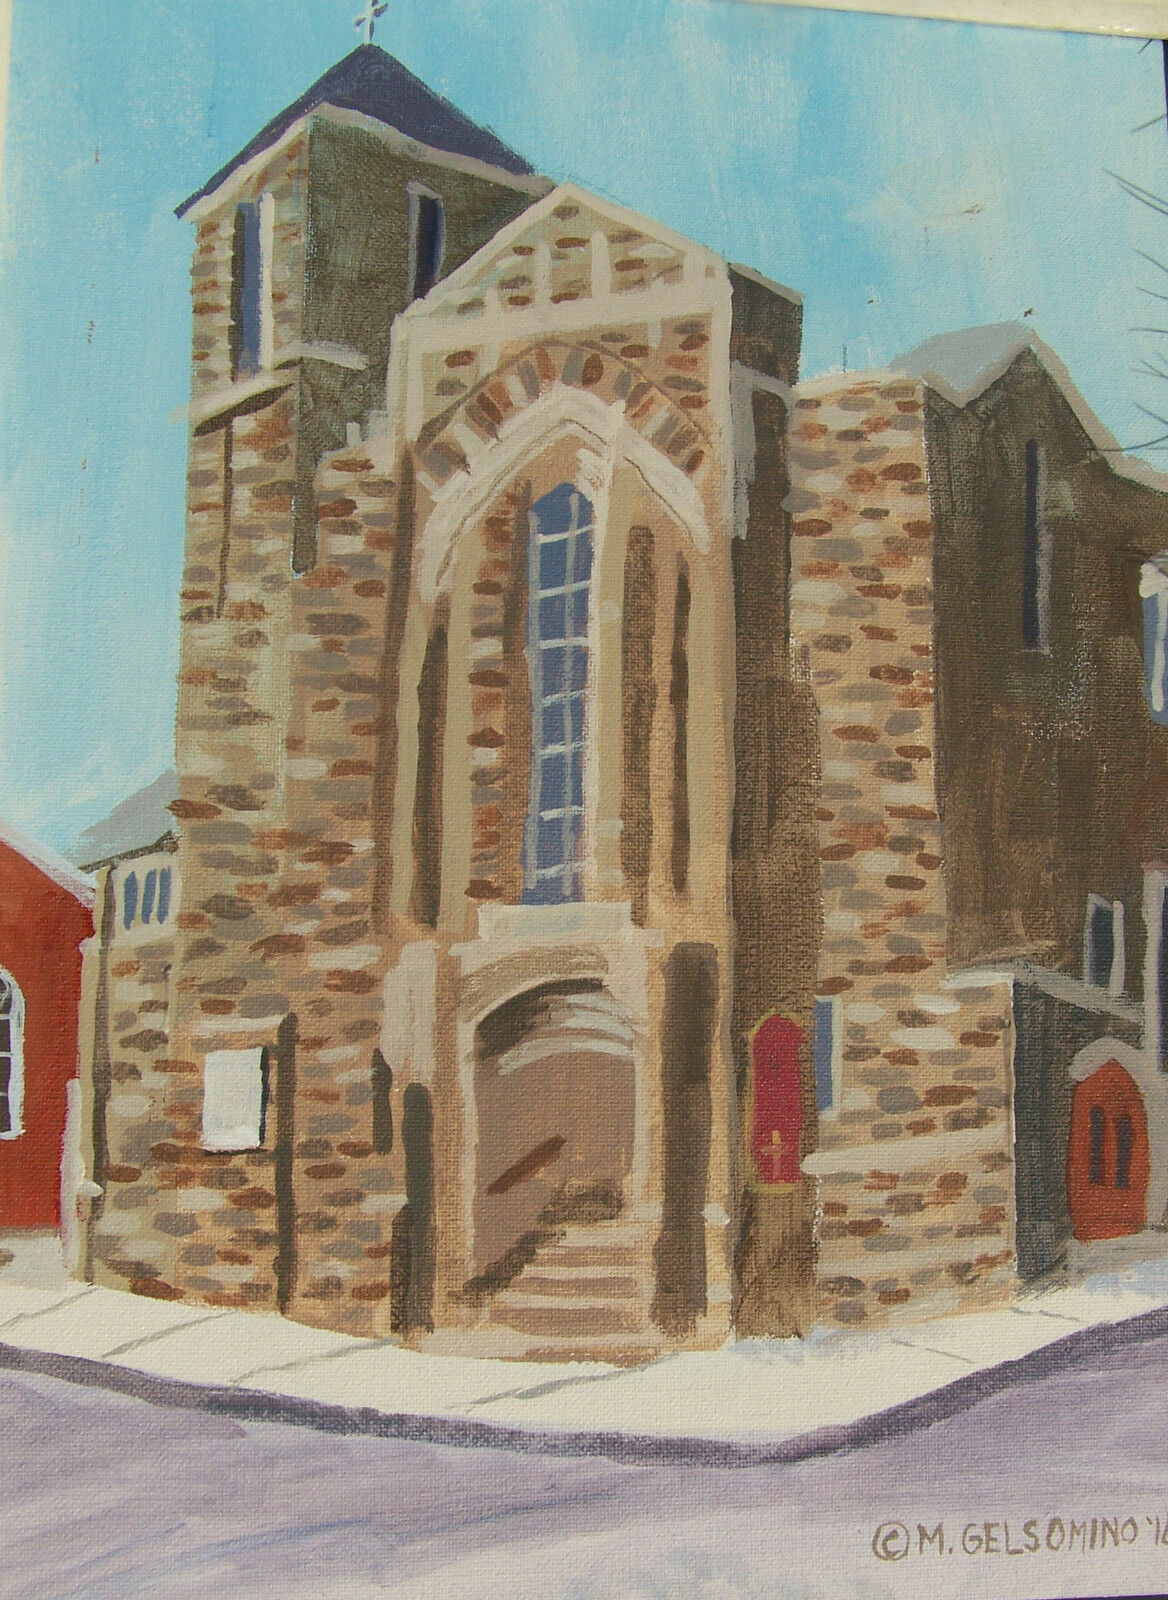 Old Stone Church, Acrylics By Marie Gelsomino 16 x12 , Framed - $35.00